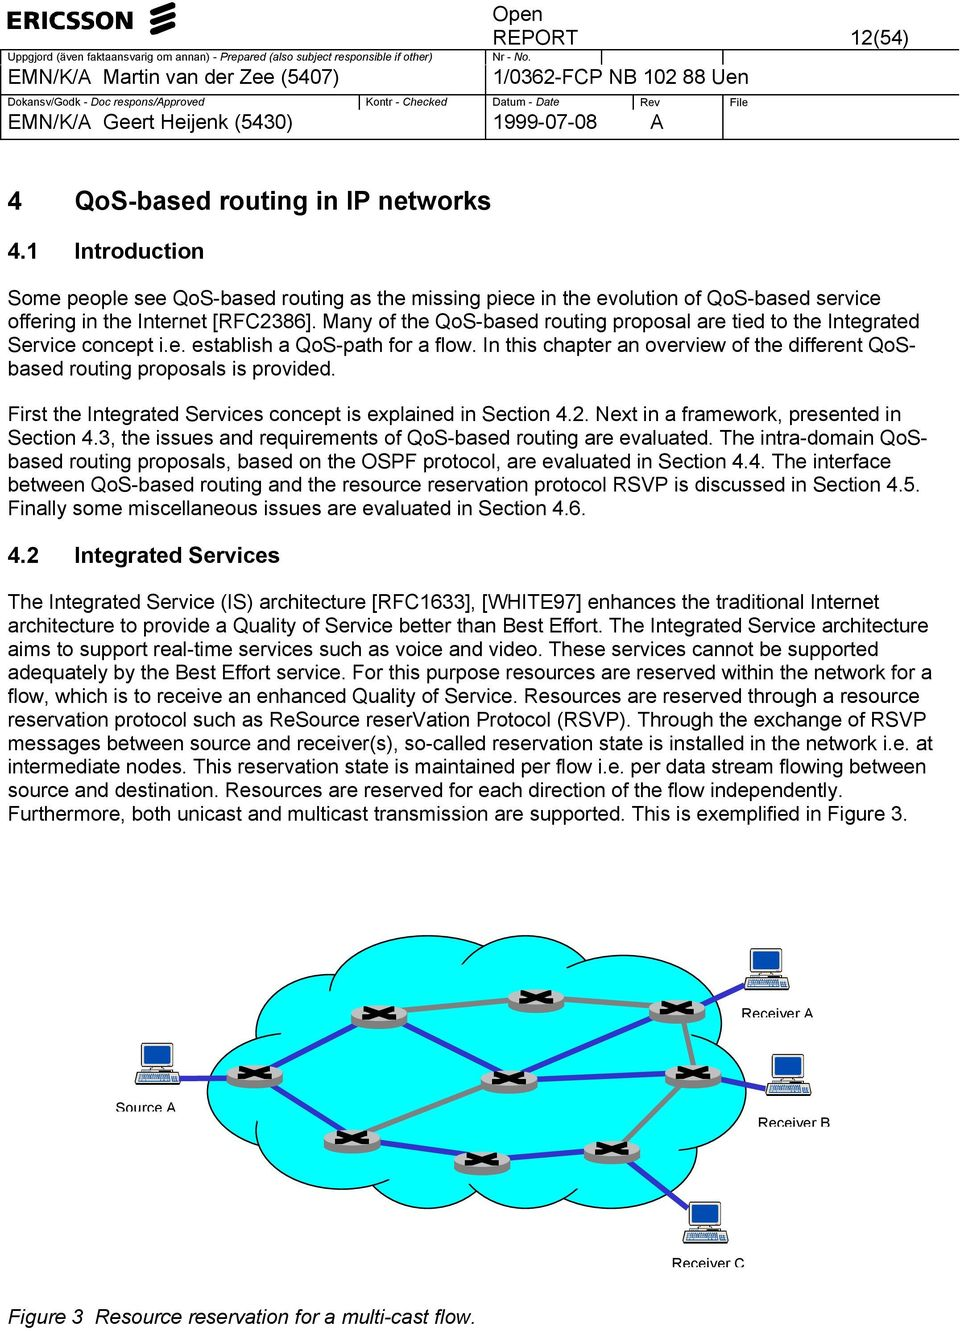 In this chapter an overview of the different QoSbased routing proposals is provided. First the Integrated Services concept is explained in Section 4.2. Next in a framework, presented in Section 4.